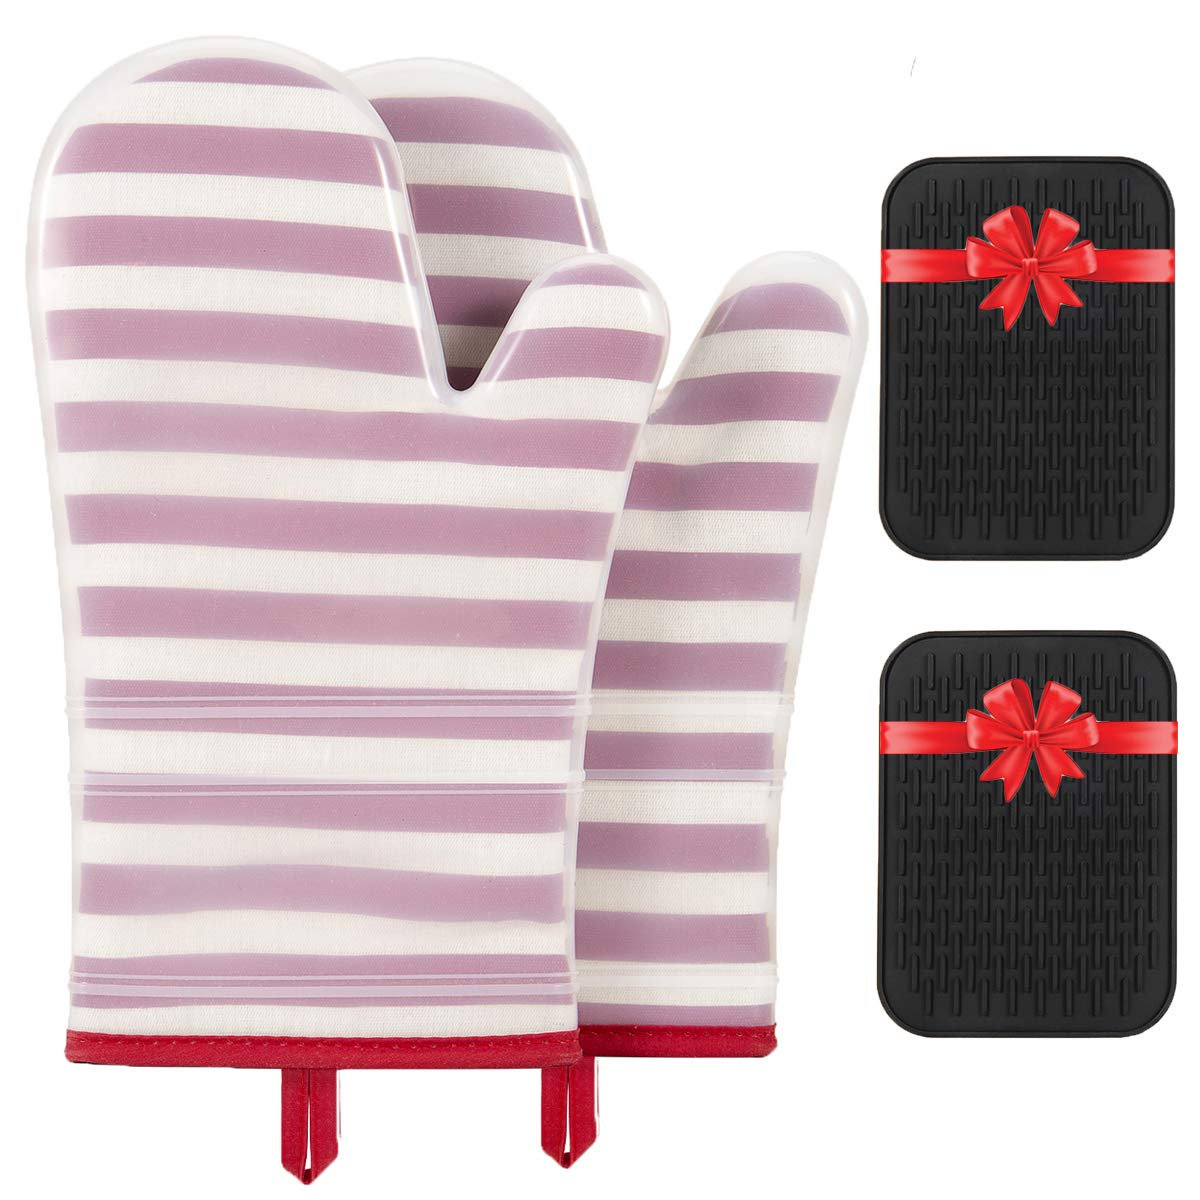 OUZIFISH Silicone Oven Mitts and Potholders for Free (1 Pair), Quilted Cotton Lining Oven Mitts Heat Resistant 500 Degrees, Non-Slip Extra Long Silicone Trivets Mat Set, Red